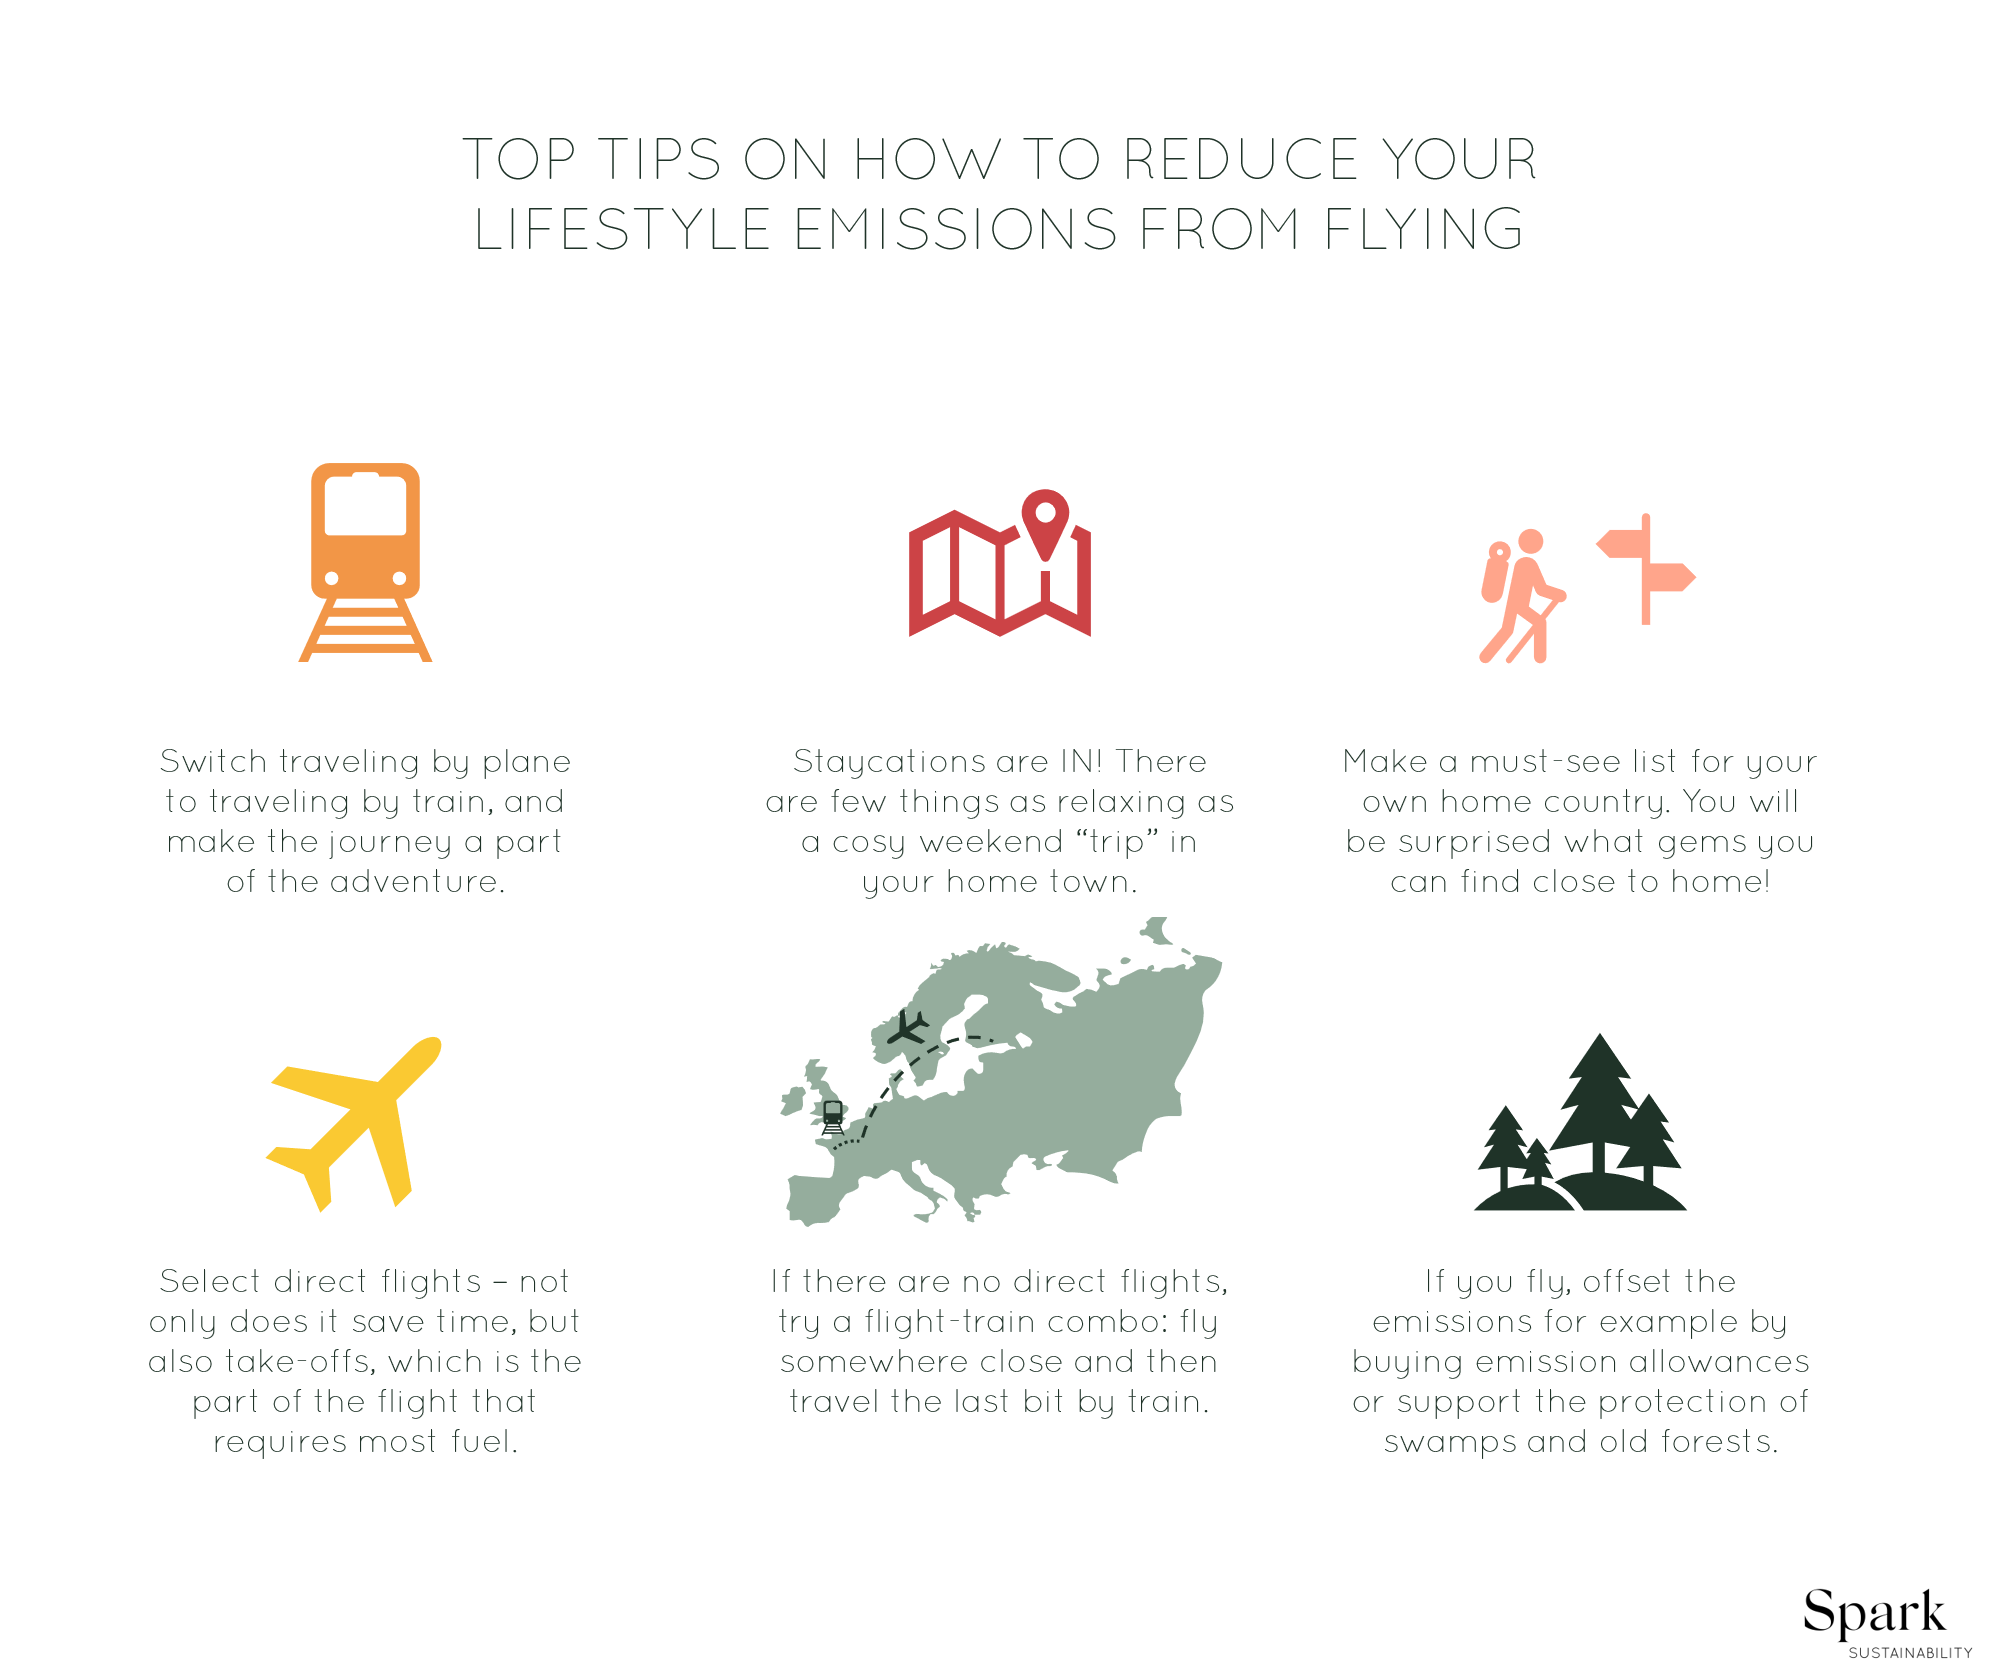 Sustainable travel – top 6 tips on how to reduce lifestyle emissions from travelling and flying.